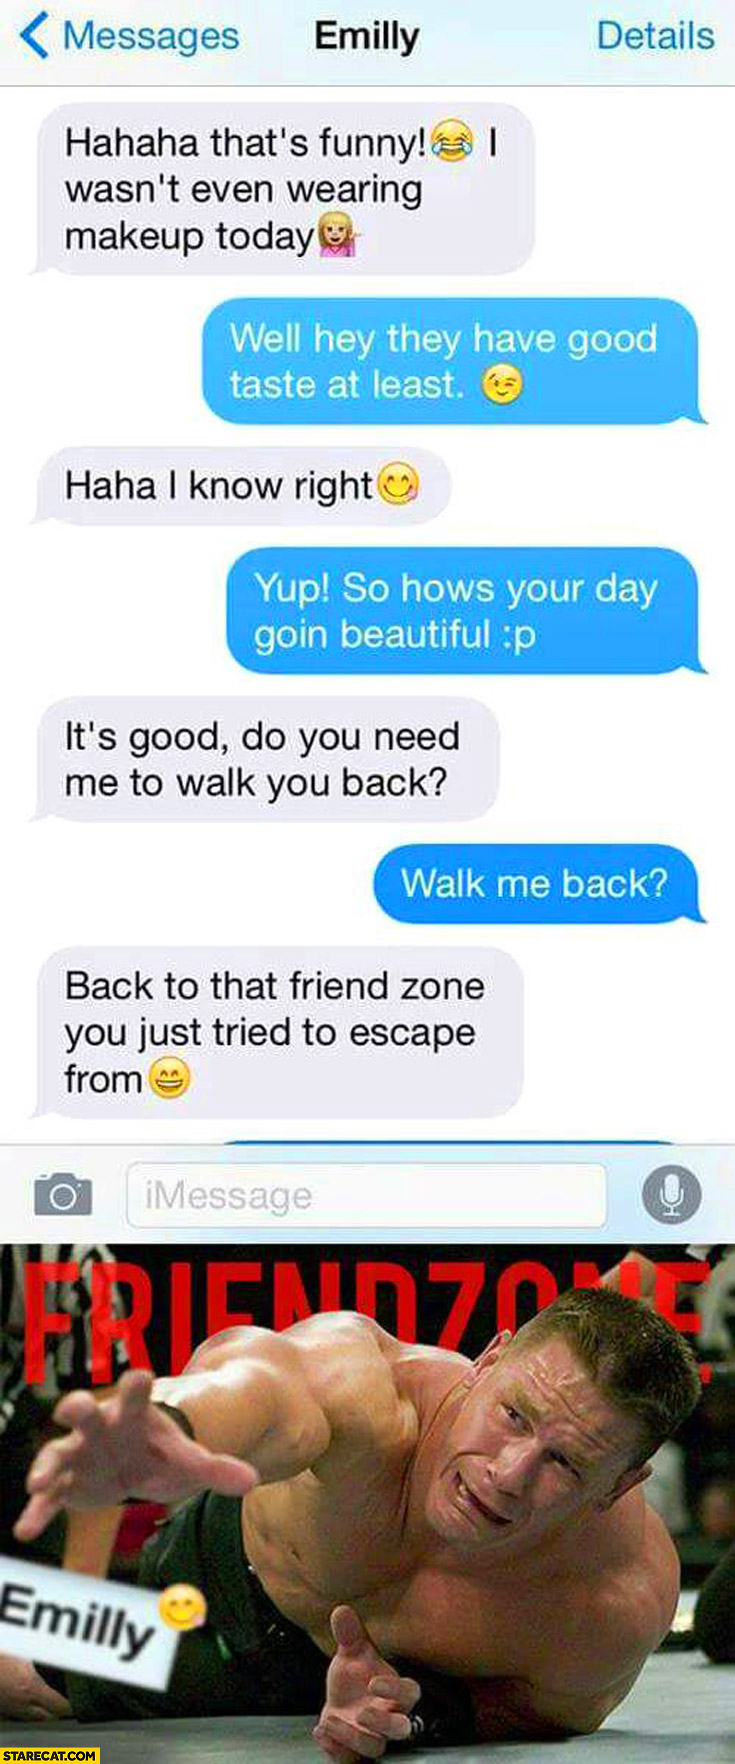 Do you need me to walk you back to that friendzone you just tried to escape from